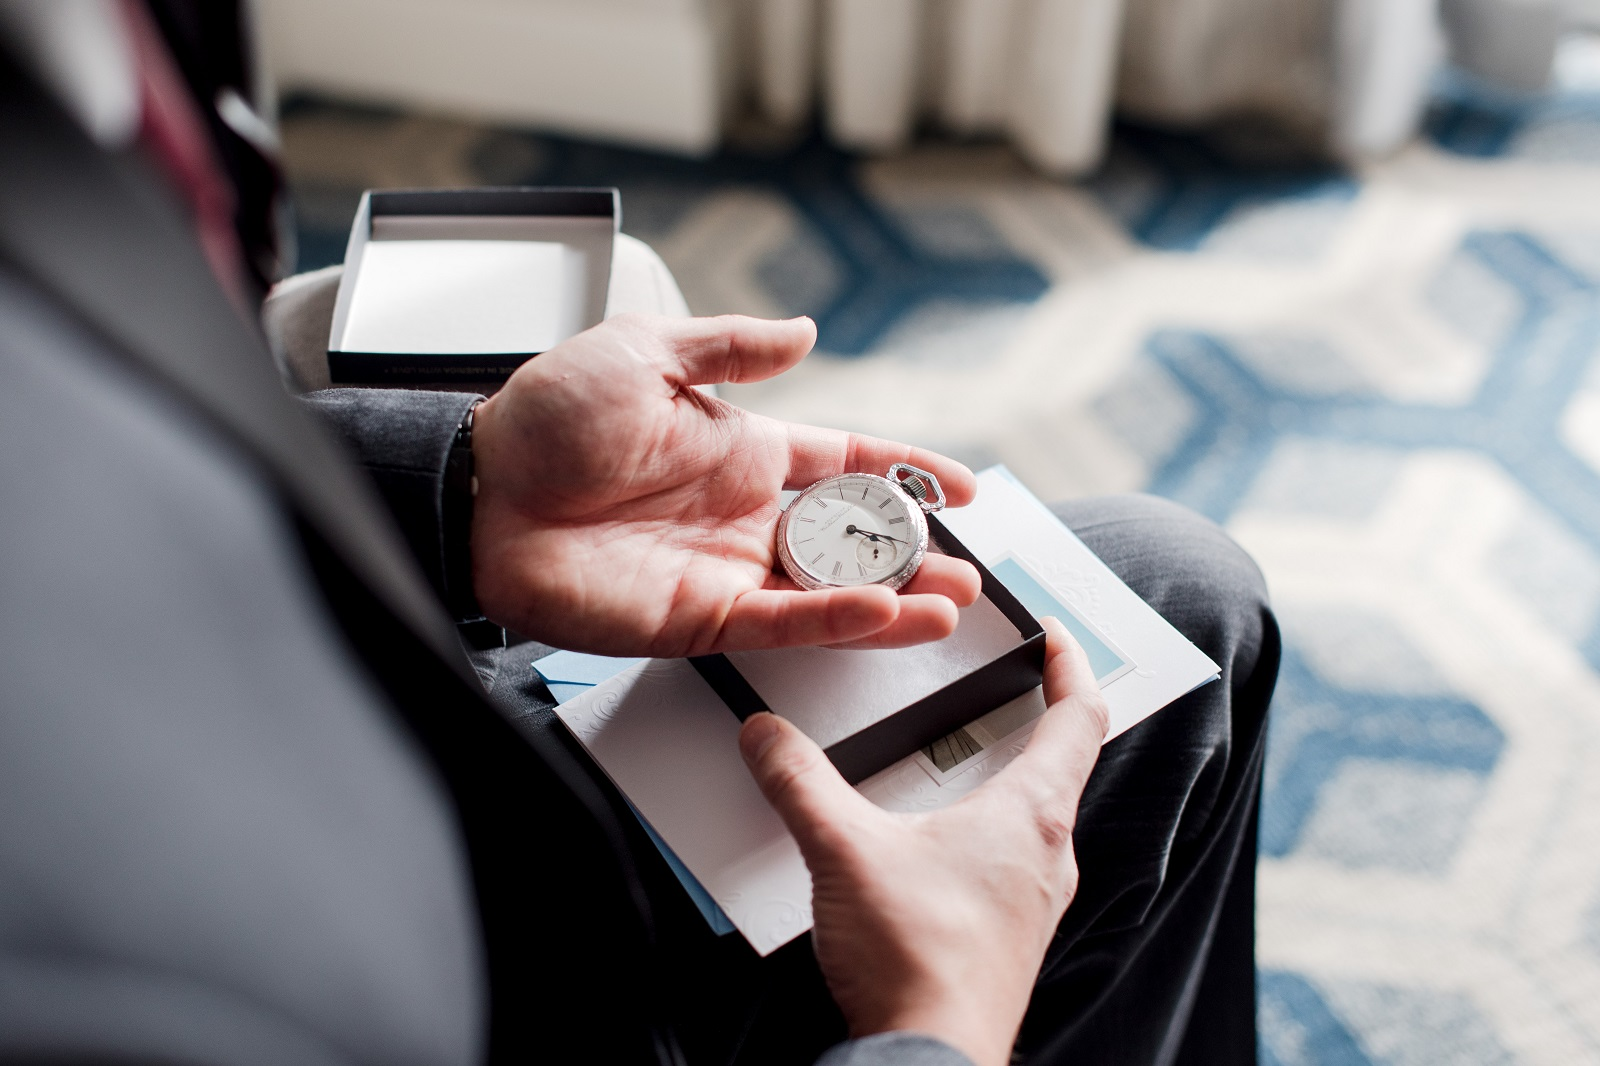 18 Cool Gadget Gifts Ideas for Groom On His Wedding